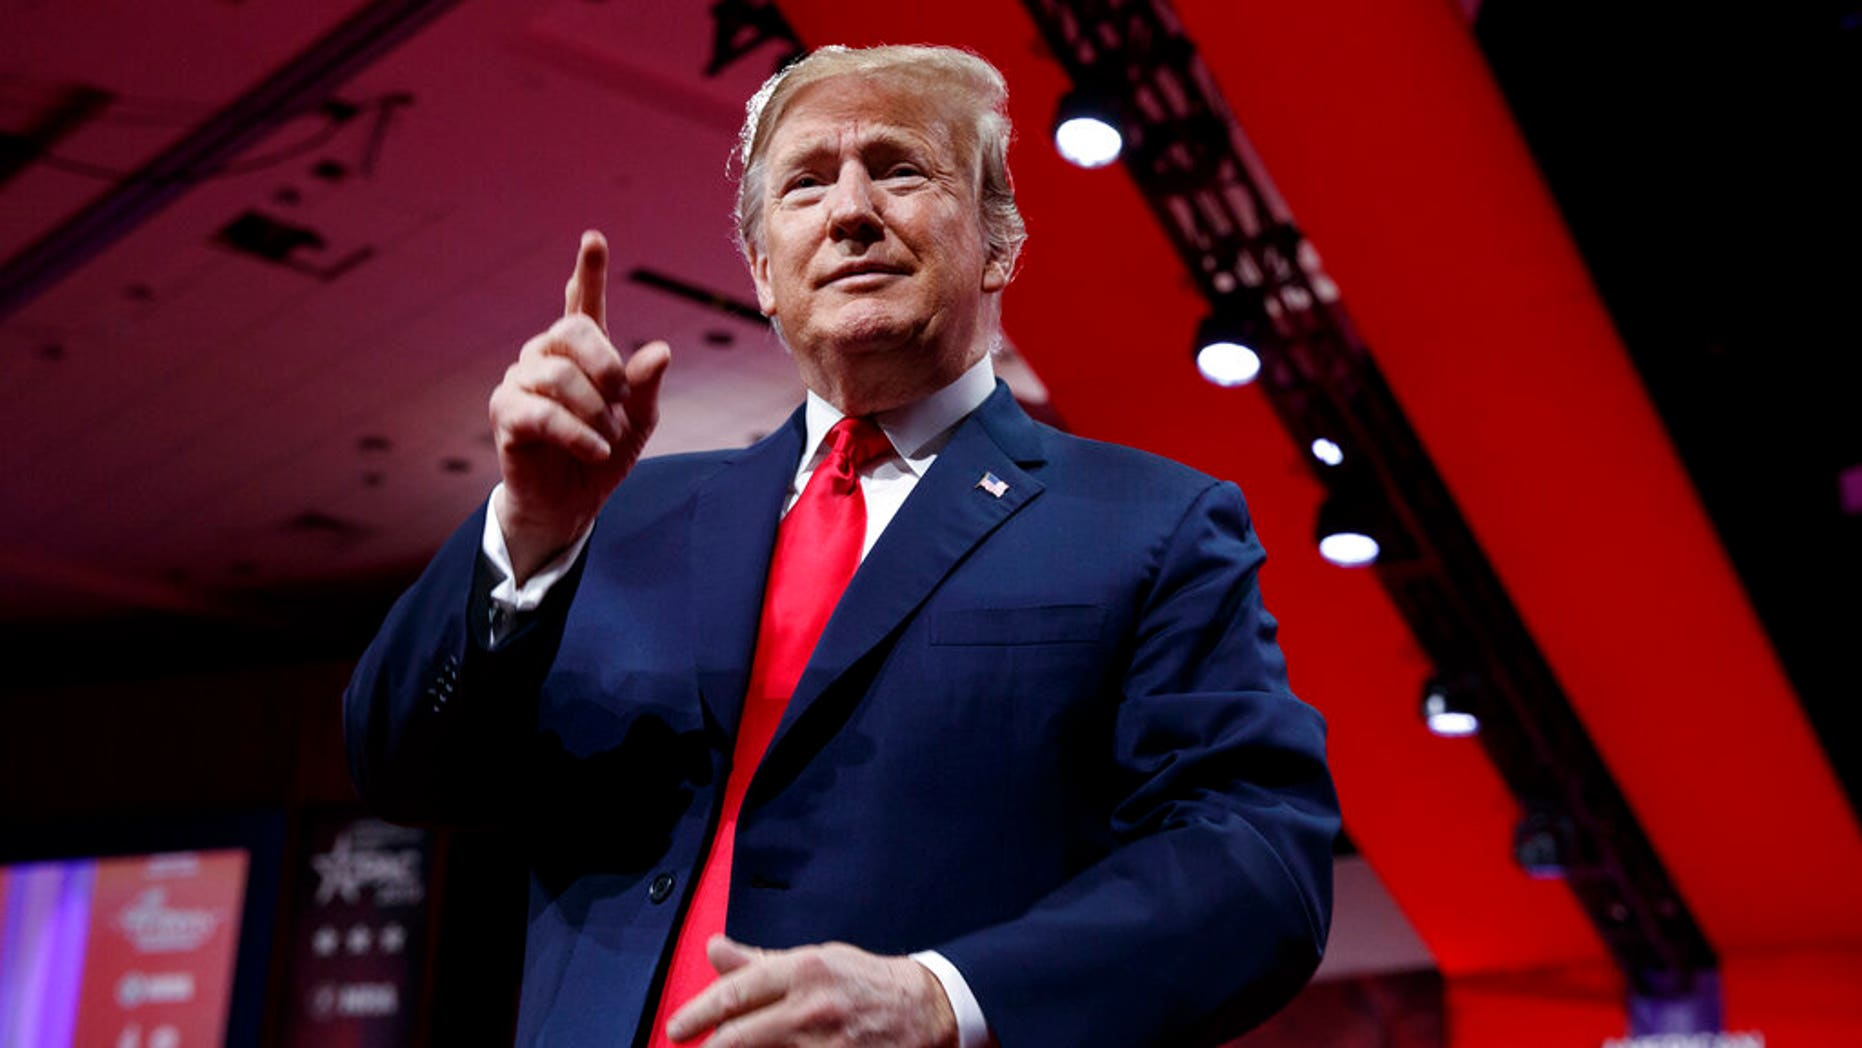 President Donald Trump looks to the cheering audience as he arrives to speak at Conservative Political Action Conference, CPAC 2019, in Oxon Hill, Md., Saturday, March 2, 2019.